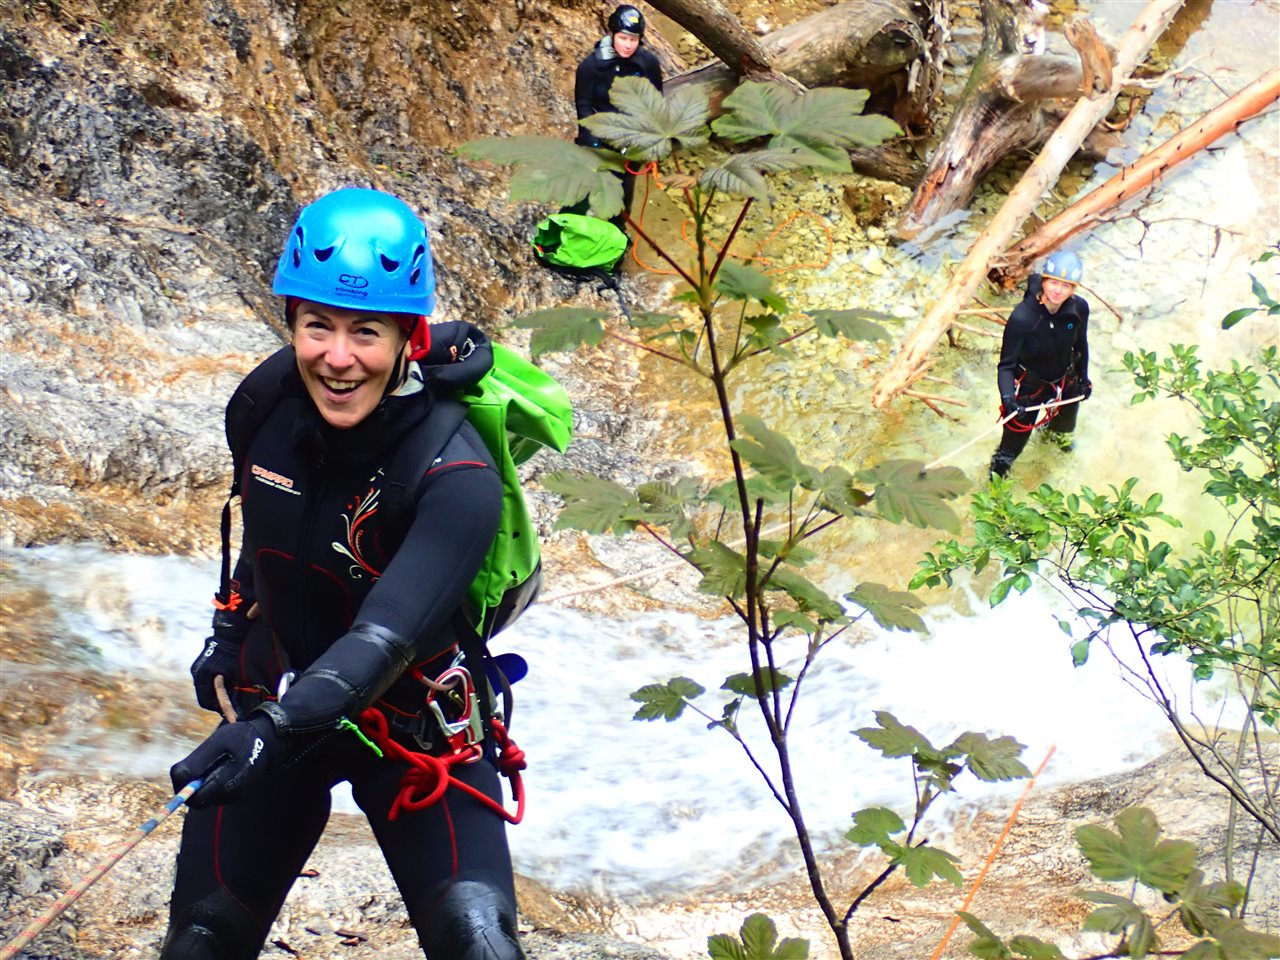 'Canyoning-Tageskurs'